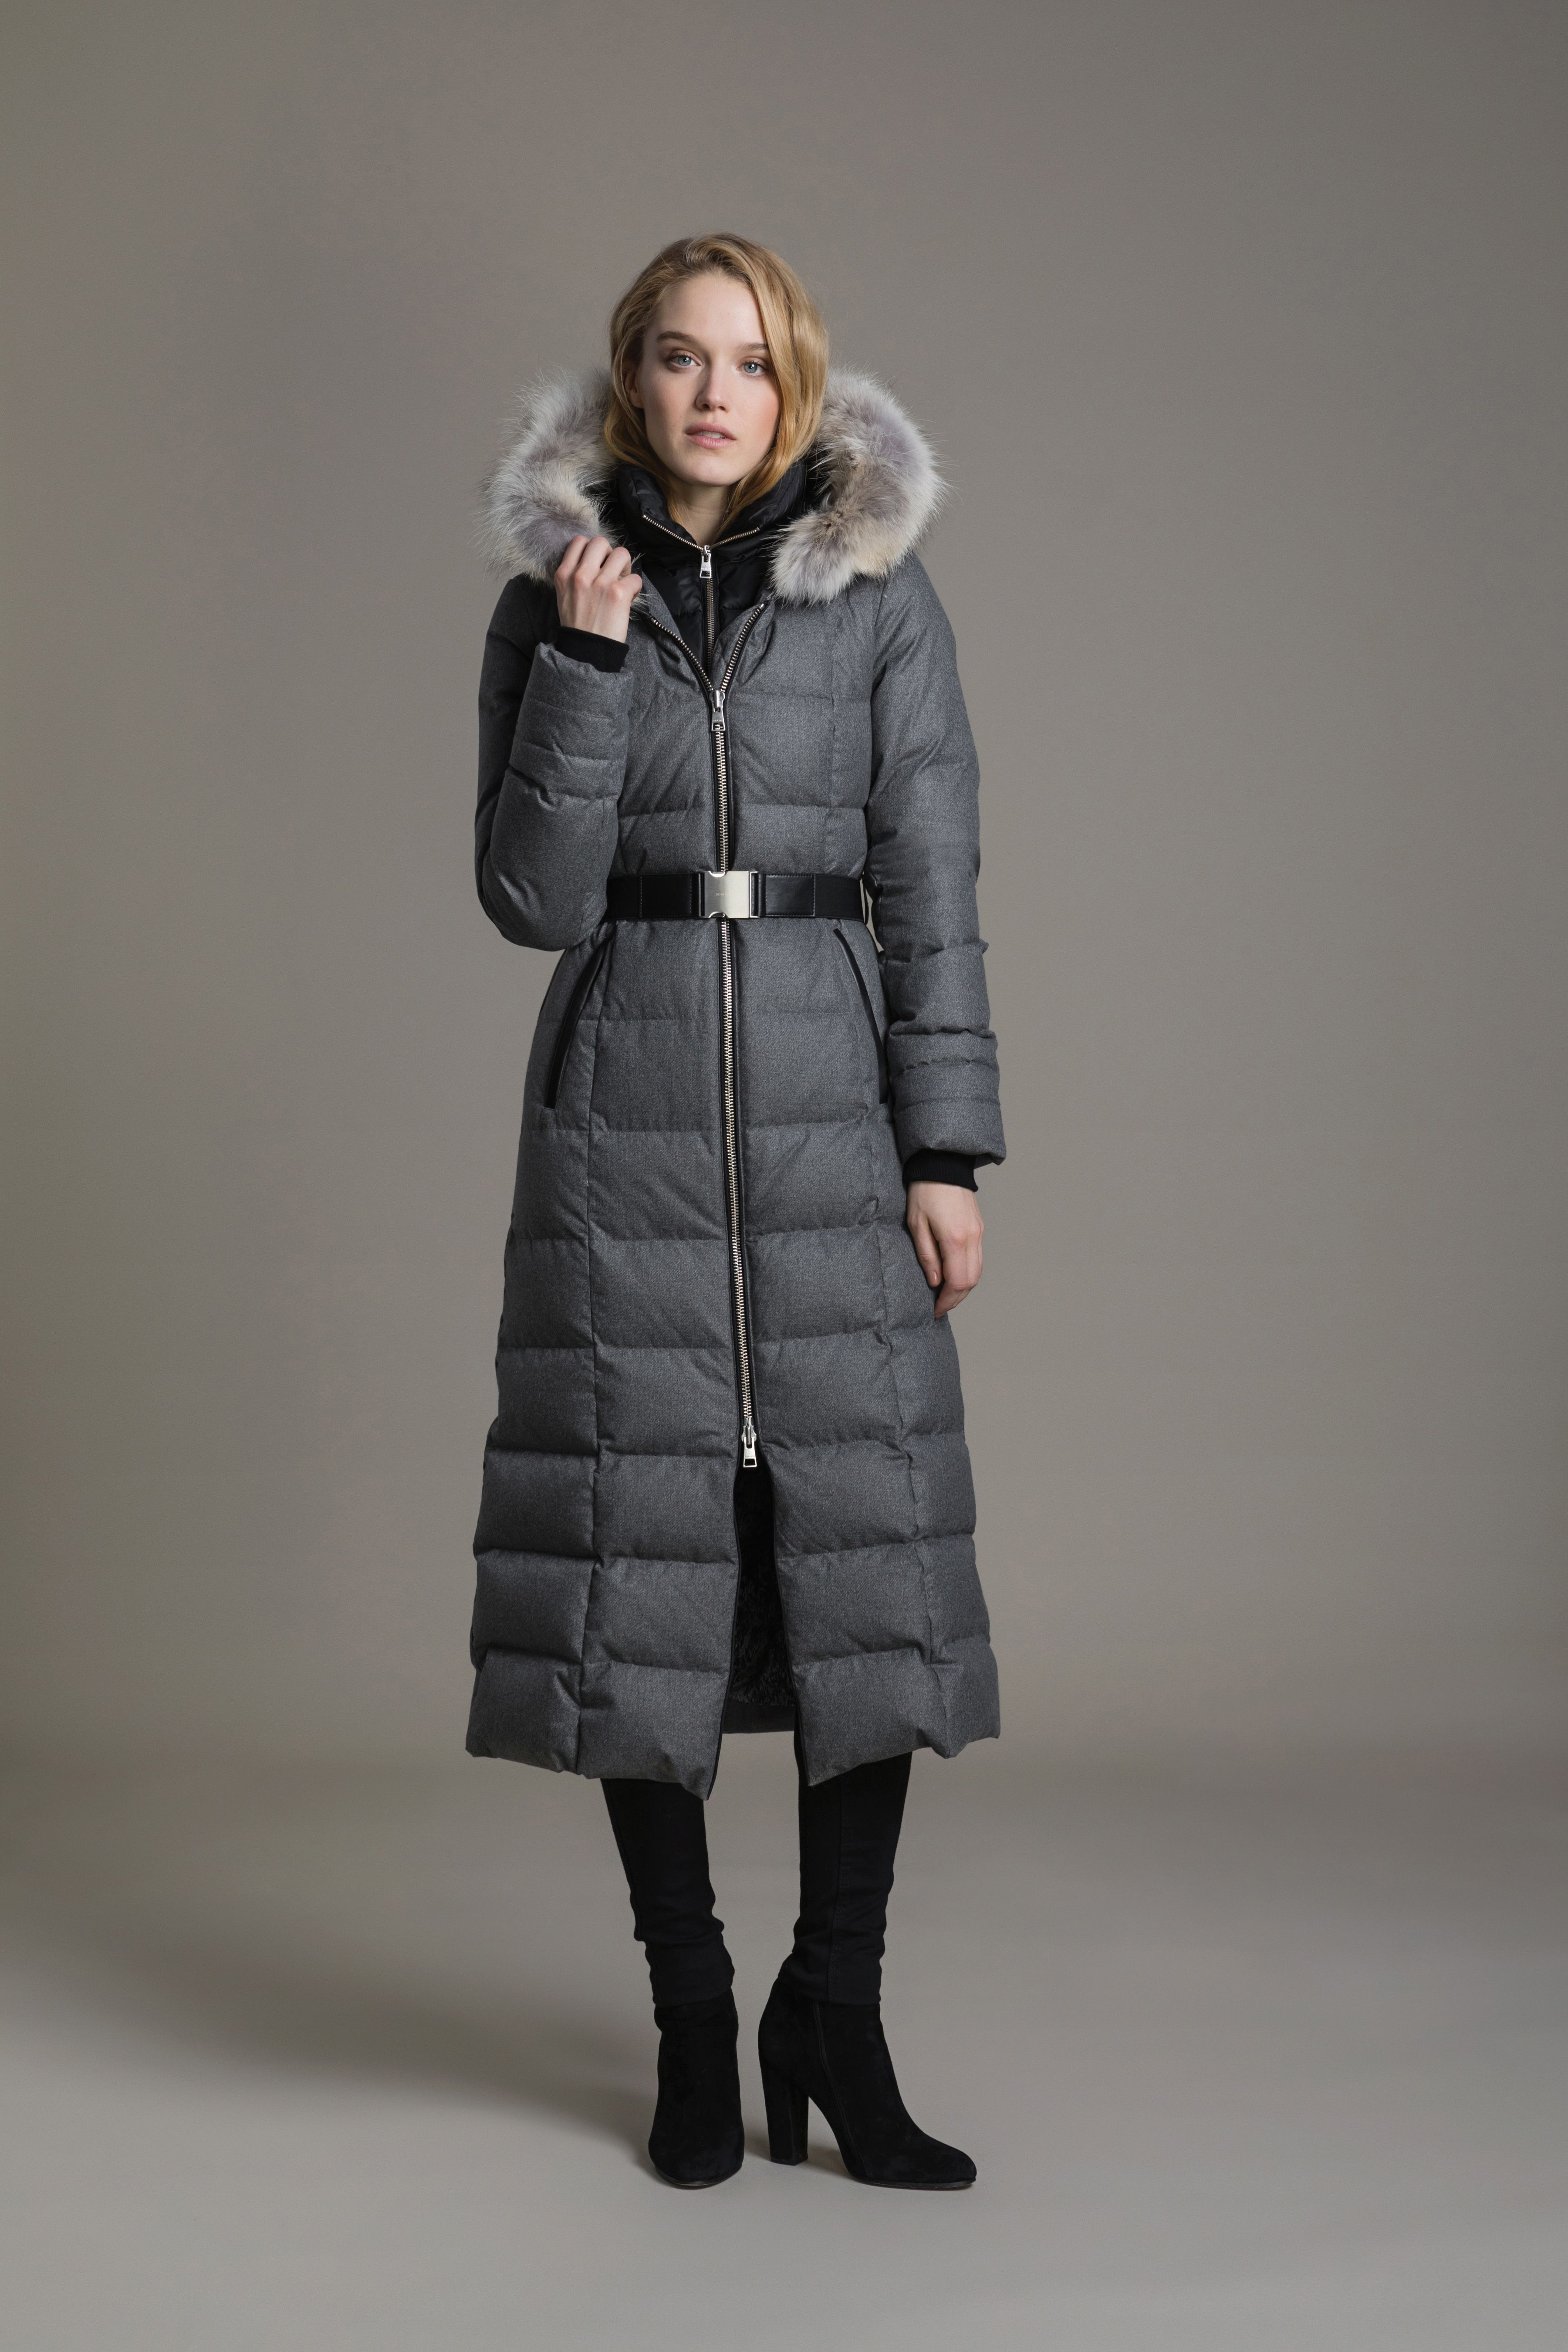 1bf077dc2 MARIANA-C by SOIA & KYO is a slim-fit, maxi-length down coat ...